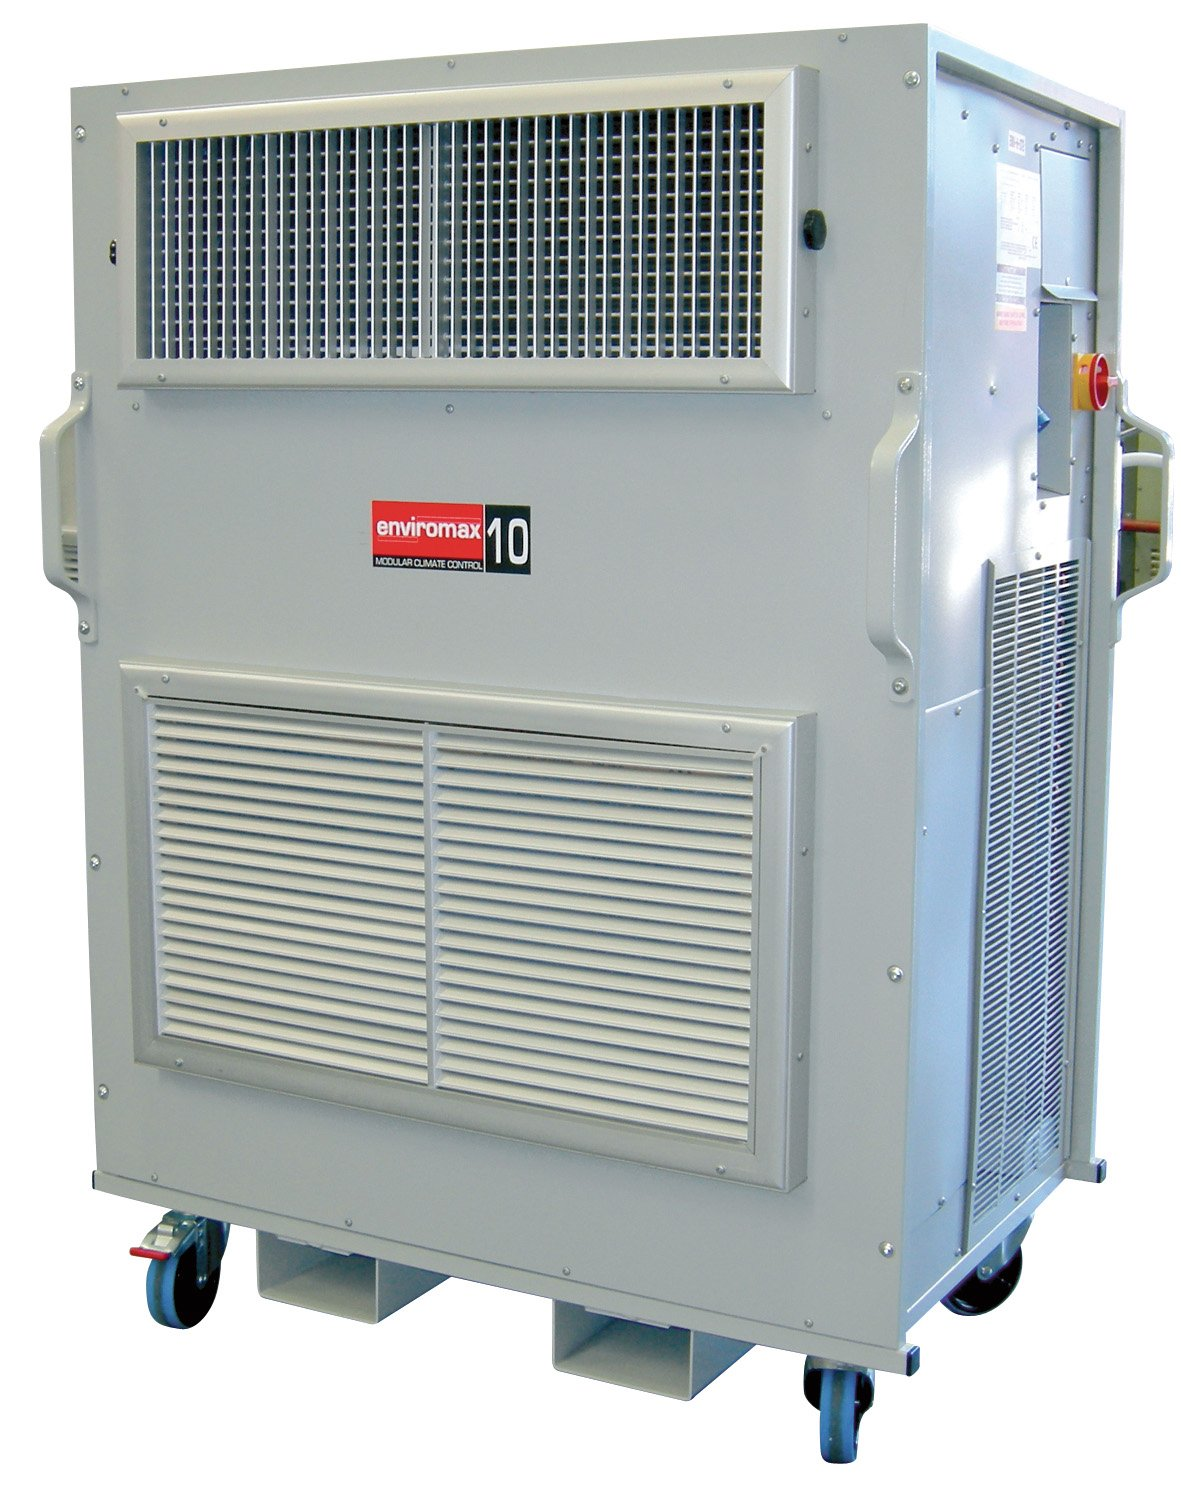 #AB2020 Portable Air Conditioning Units: Large Portable Air  Recommended 10937 Air Conditioning Unit Portable pics with 1181x1490 px on helpvideos.info - Air Conditioners, Air Coolers and more